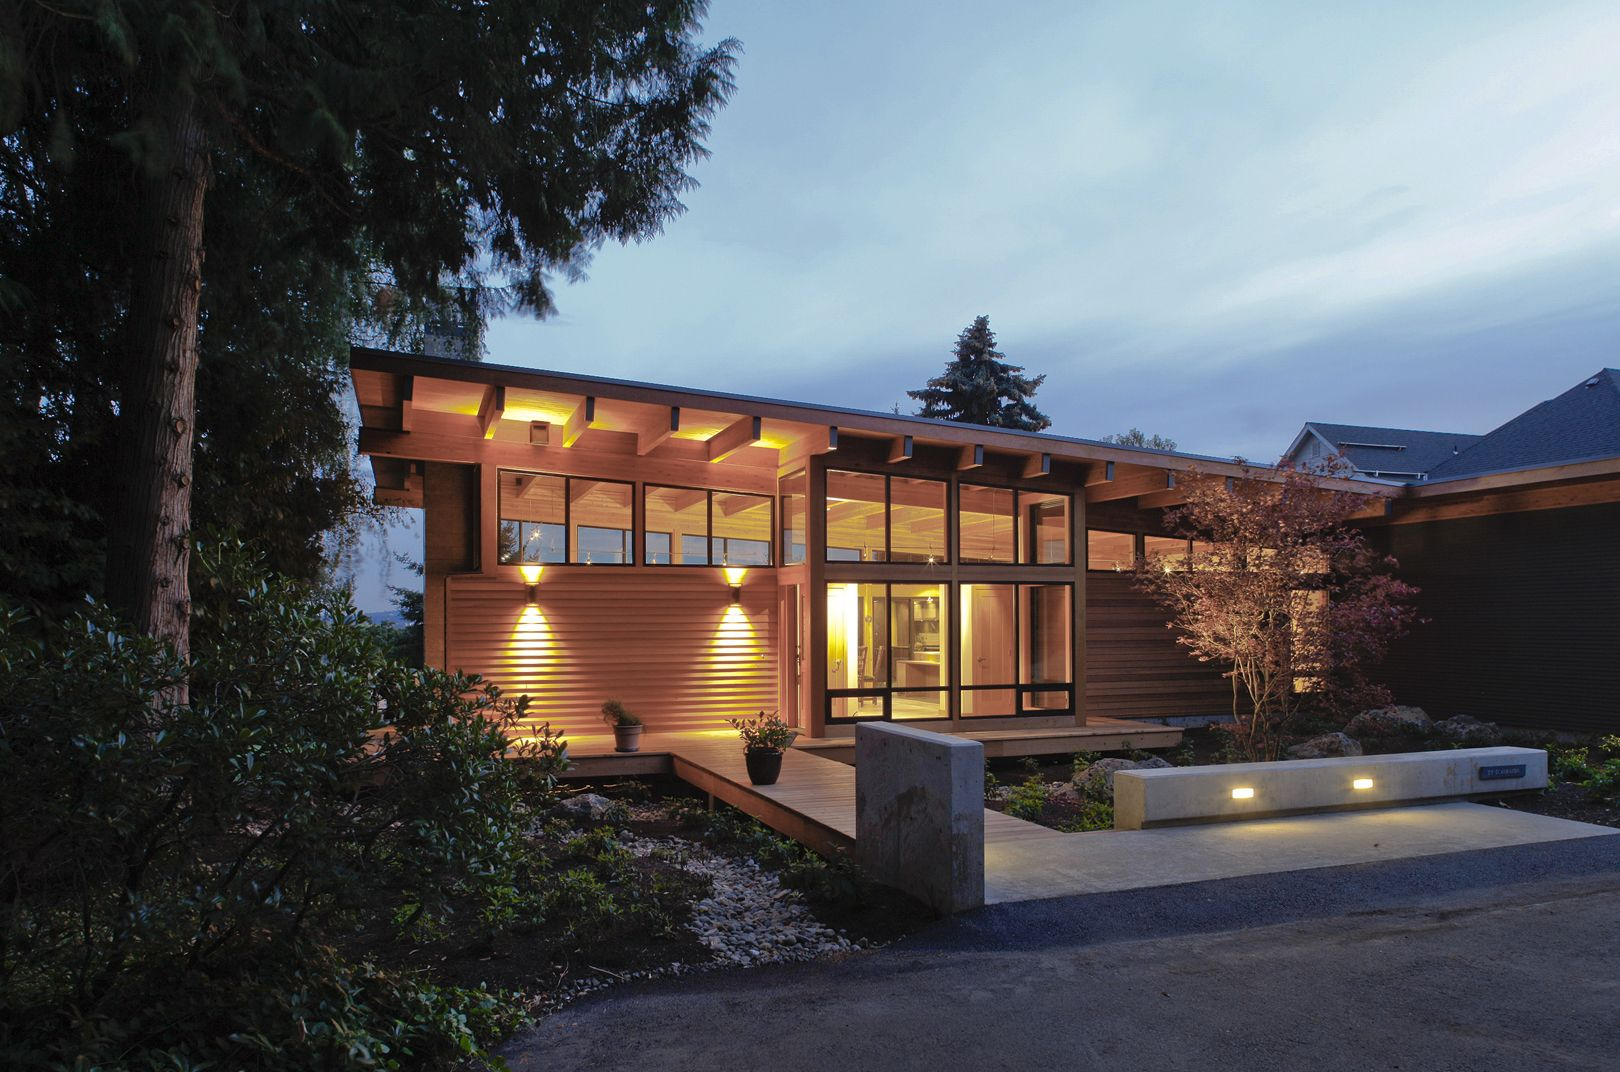 Vancouver airport home pacific northwest modern home for Vancouver washington home builders